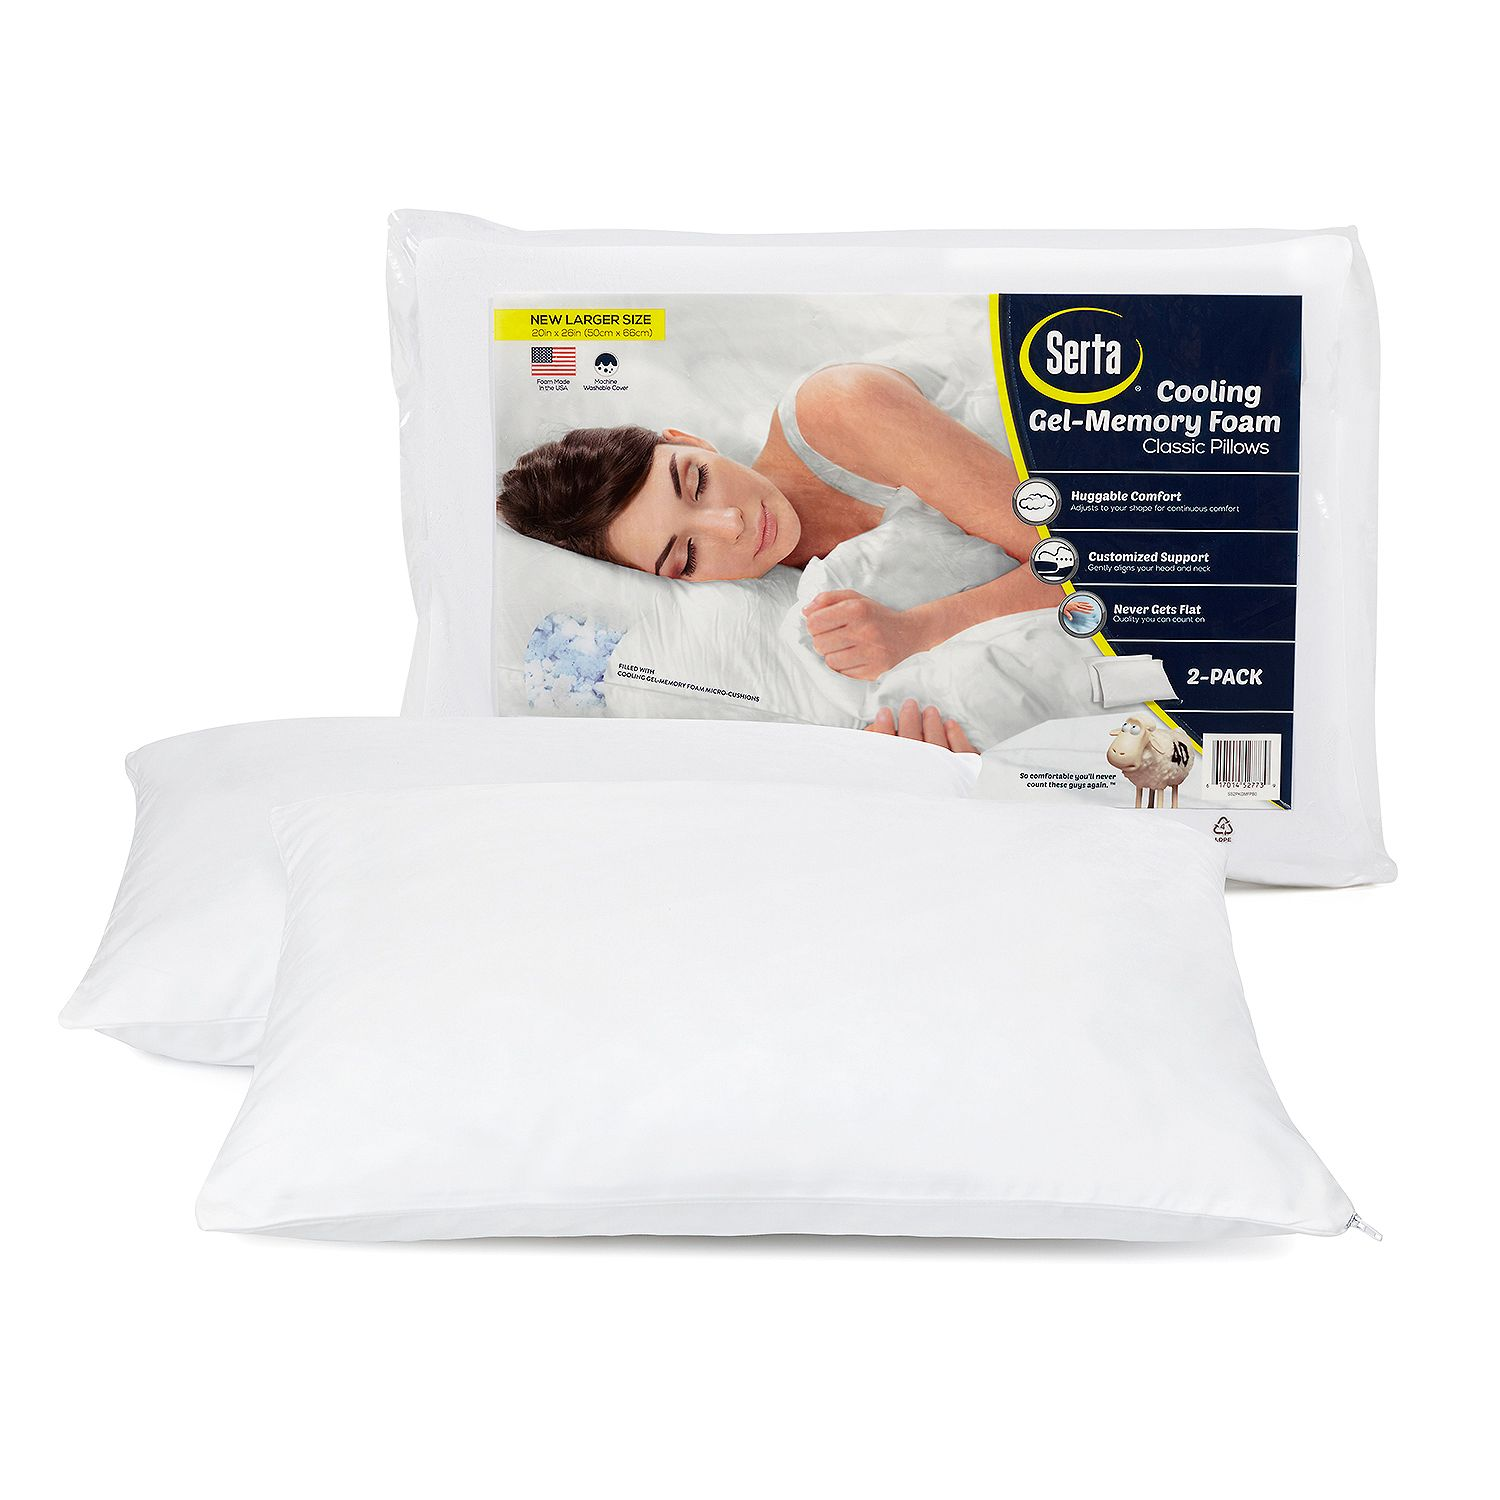 Serta Gel Memory Foam Cluster Pillows (2 pack)   Walmart.